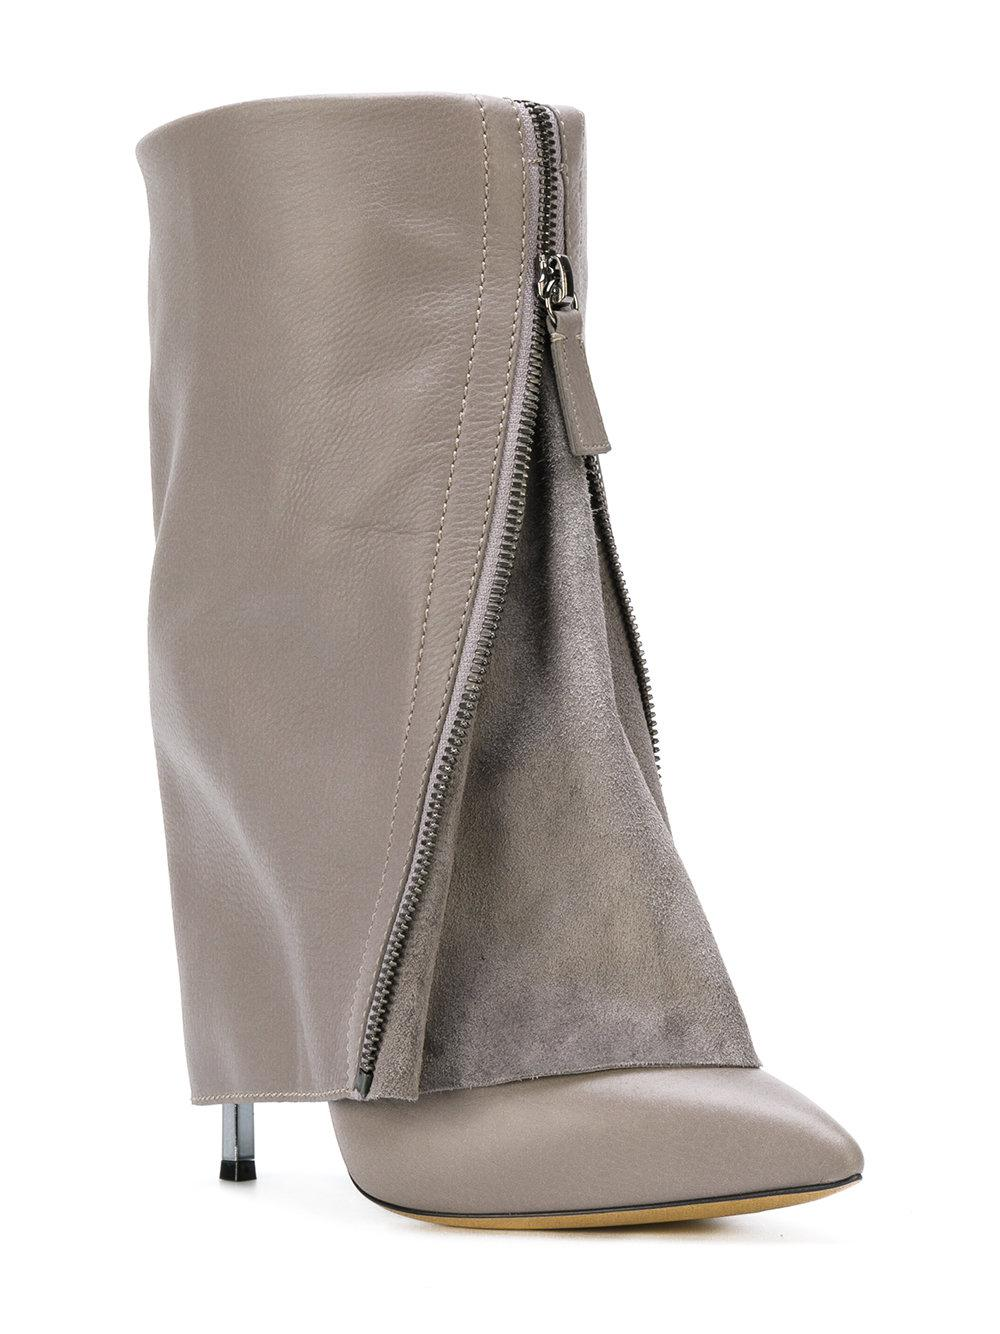 Casadei Suede Foldover Ankle Boots in Grey (Grey)